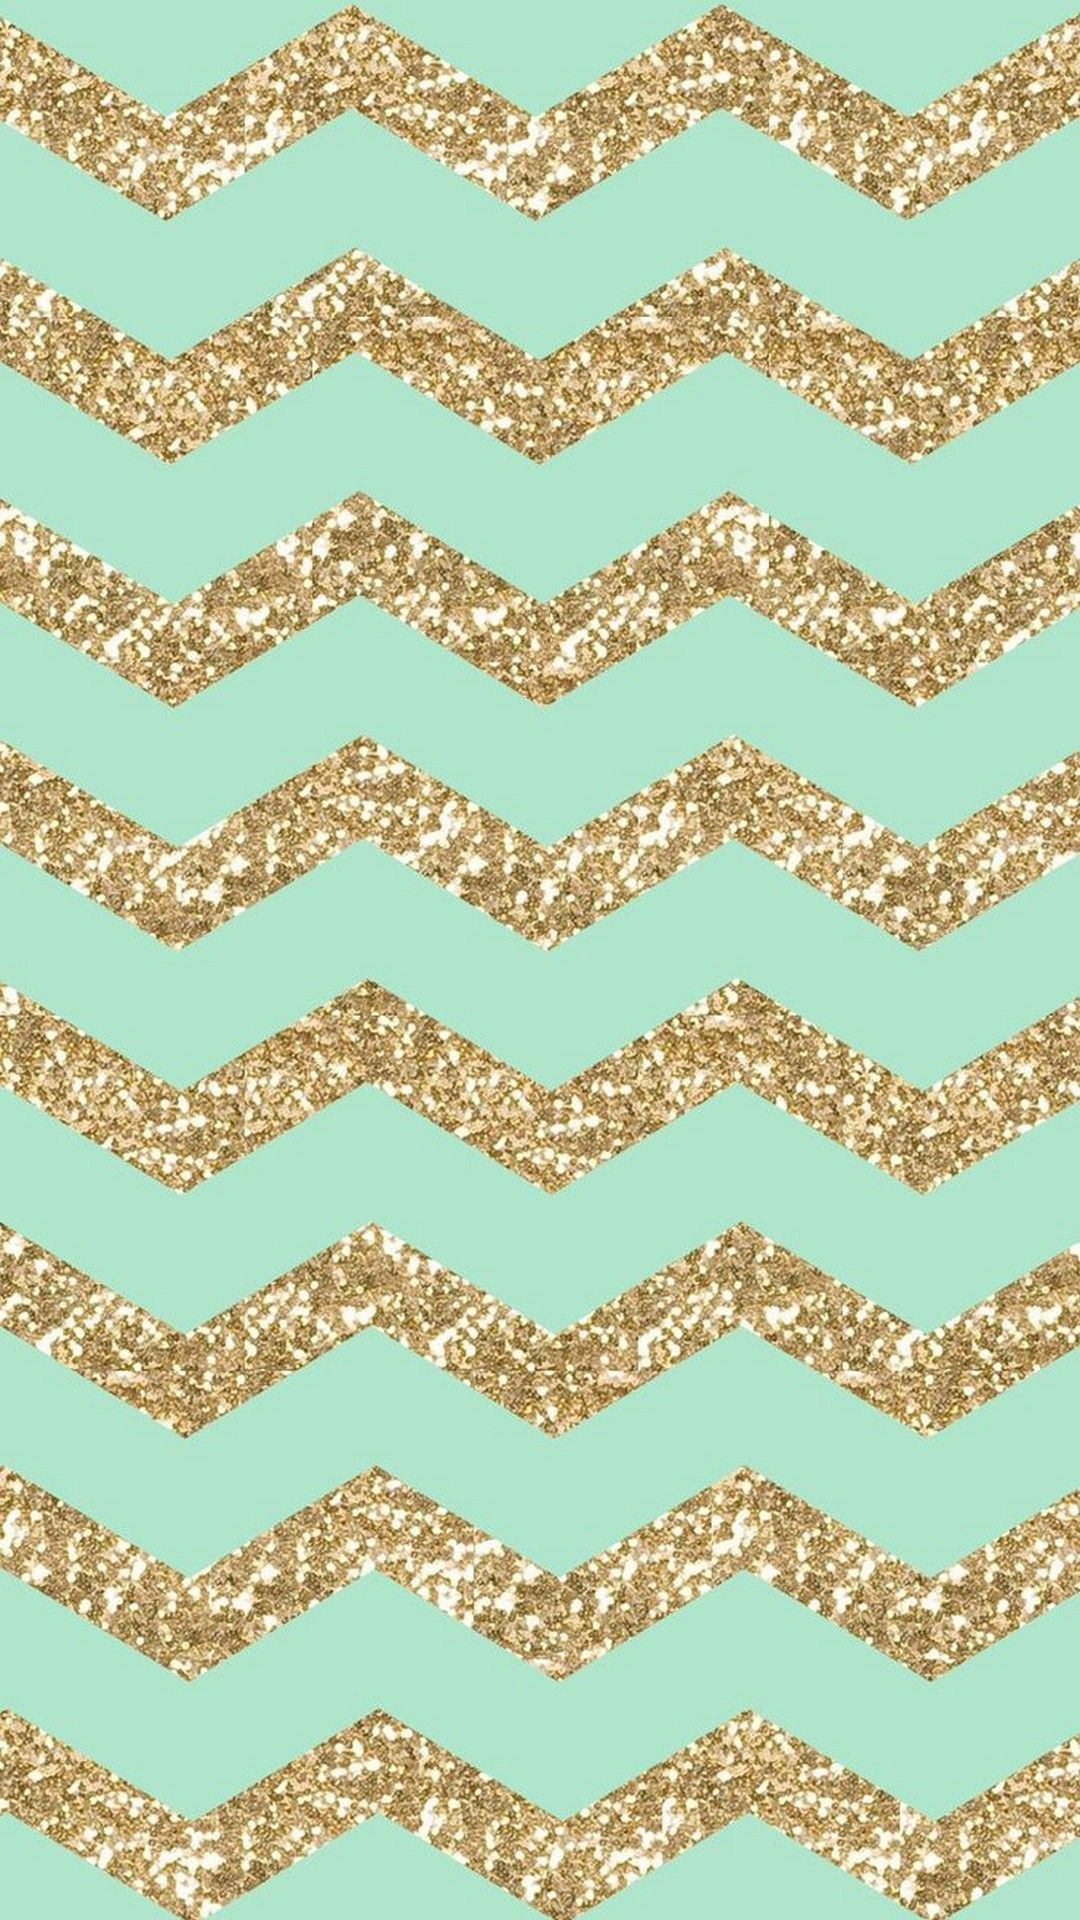 Chevron Mint iphone wallpaper pictures recommendations dress in winter in 2019